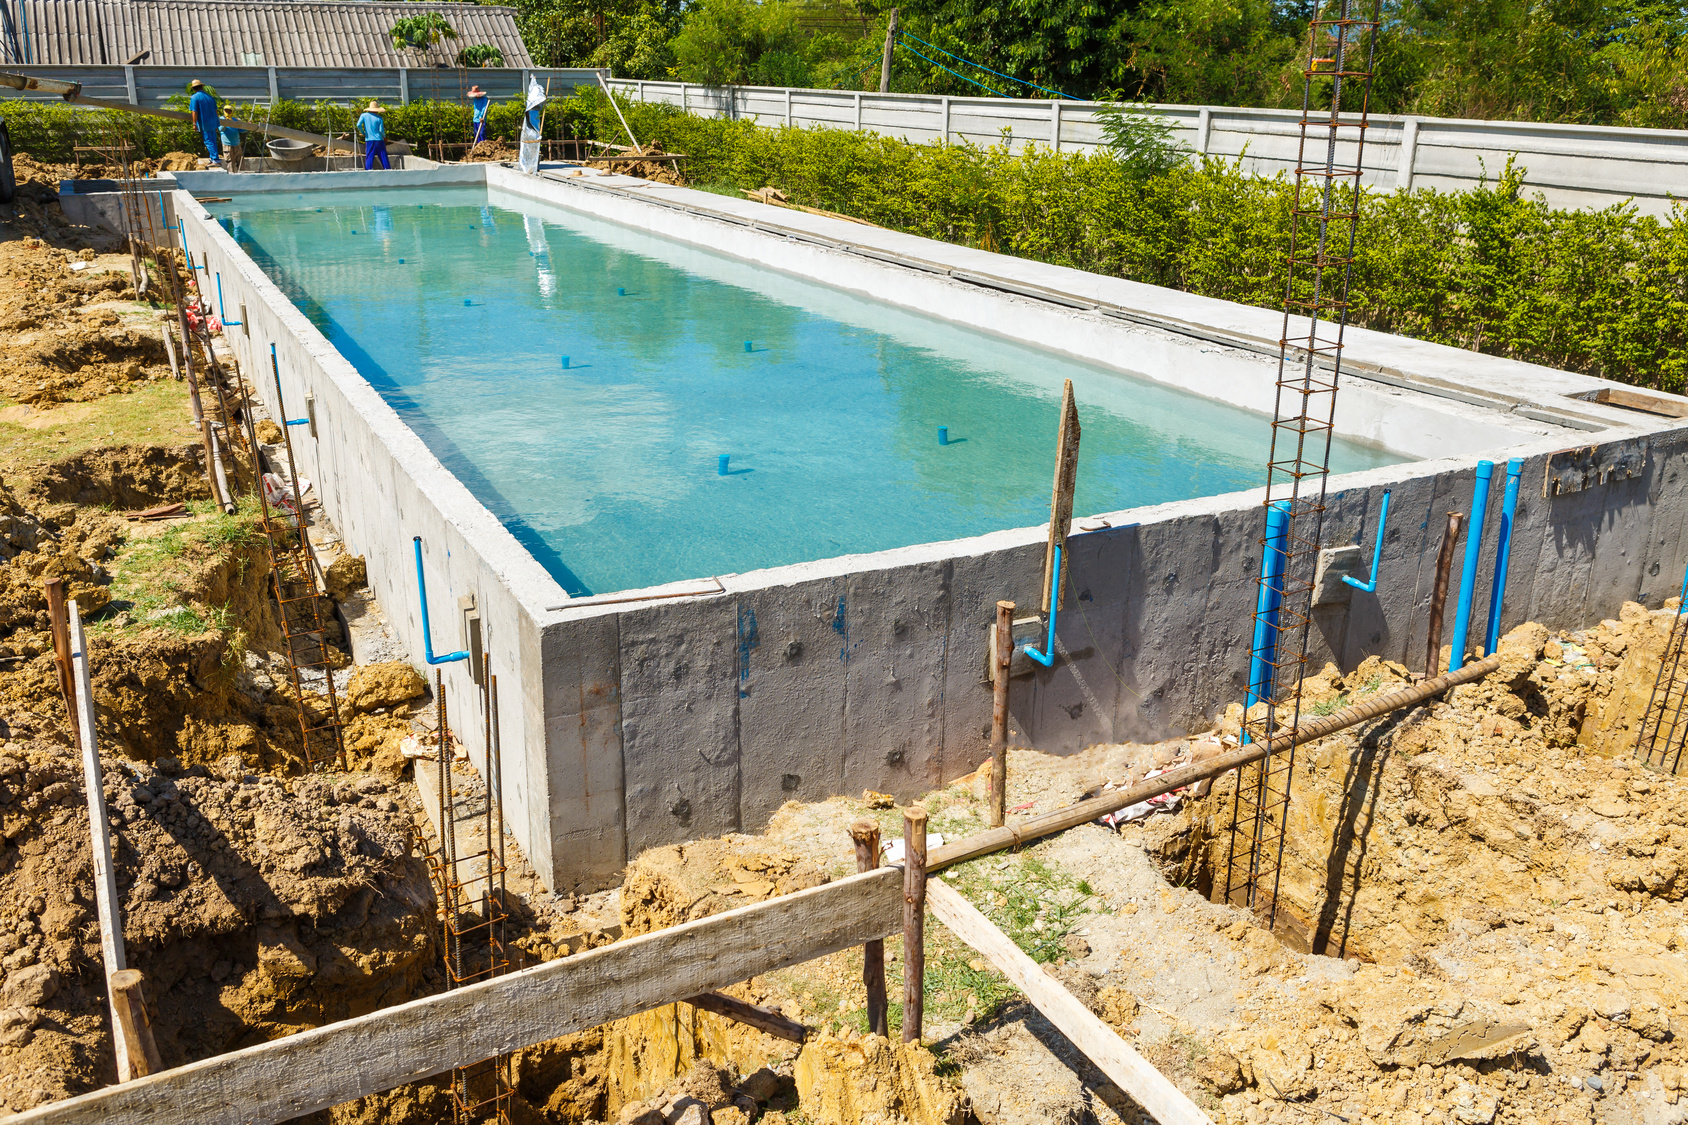 Construire une piscine b ton traditionnelle en kit for Pompe a chaleur piscine solde